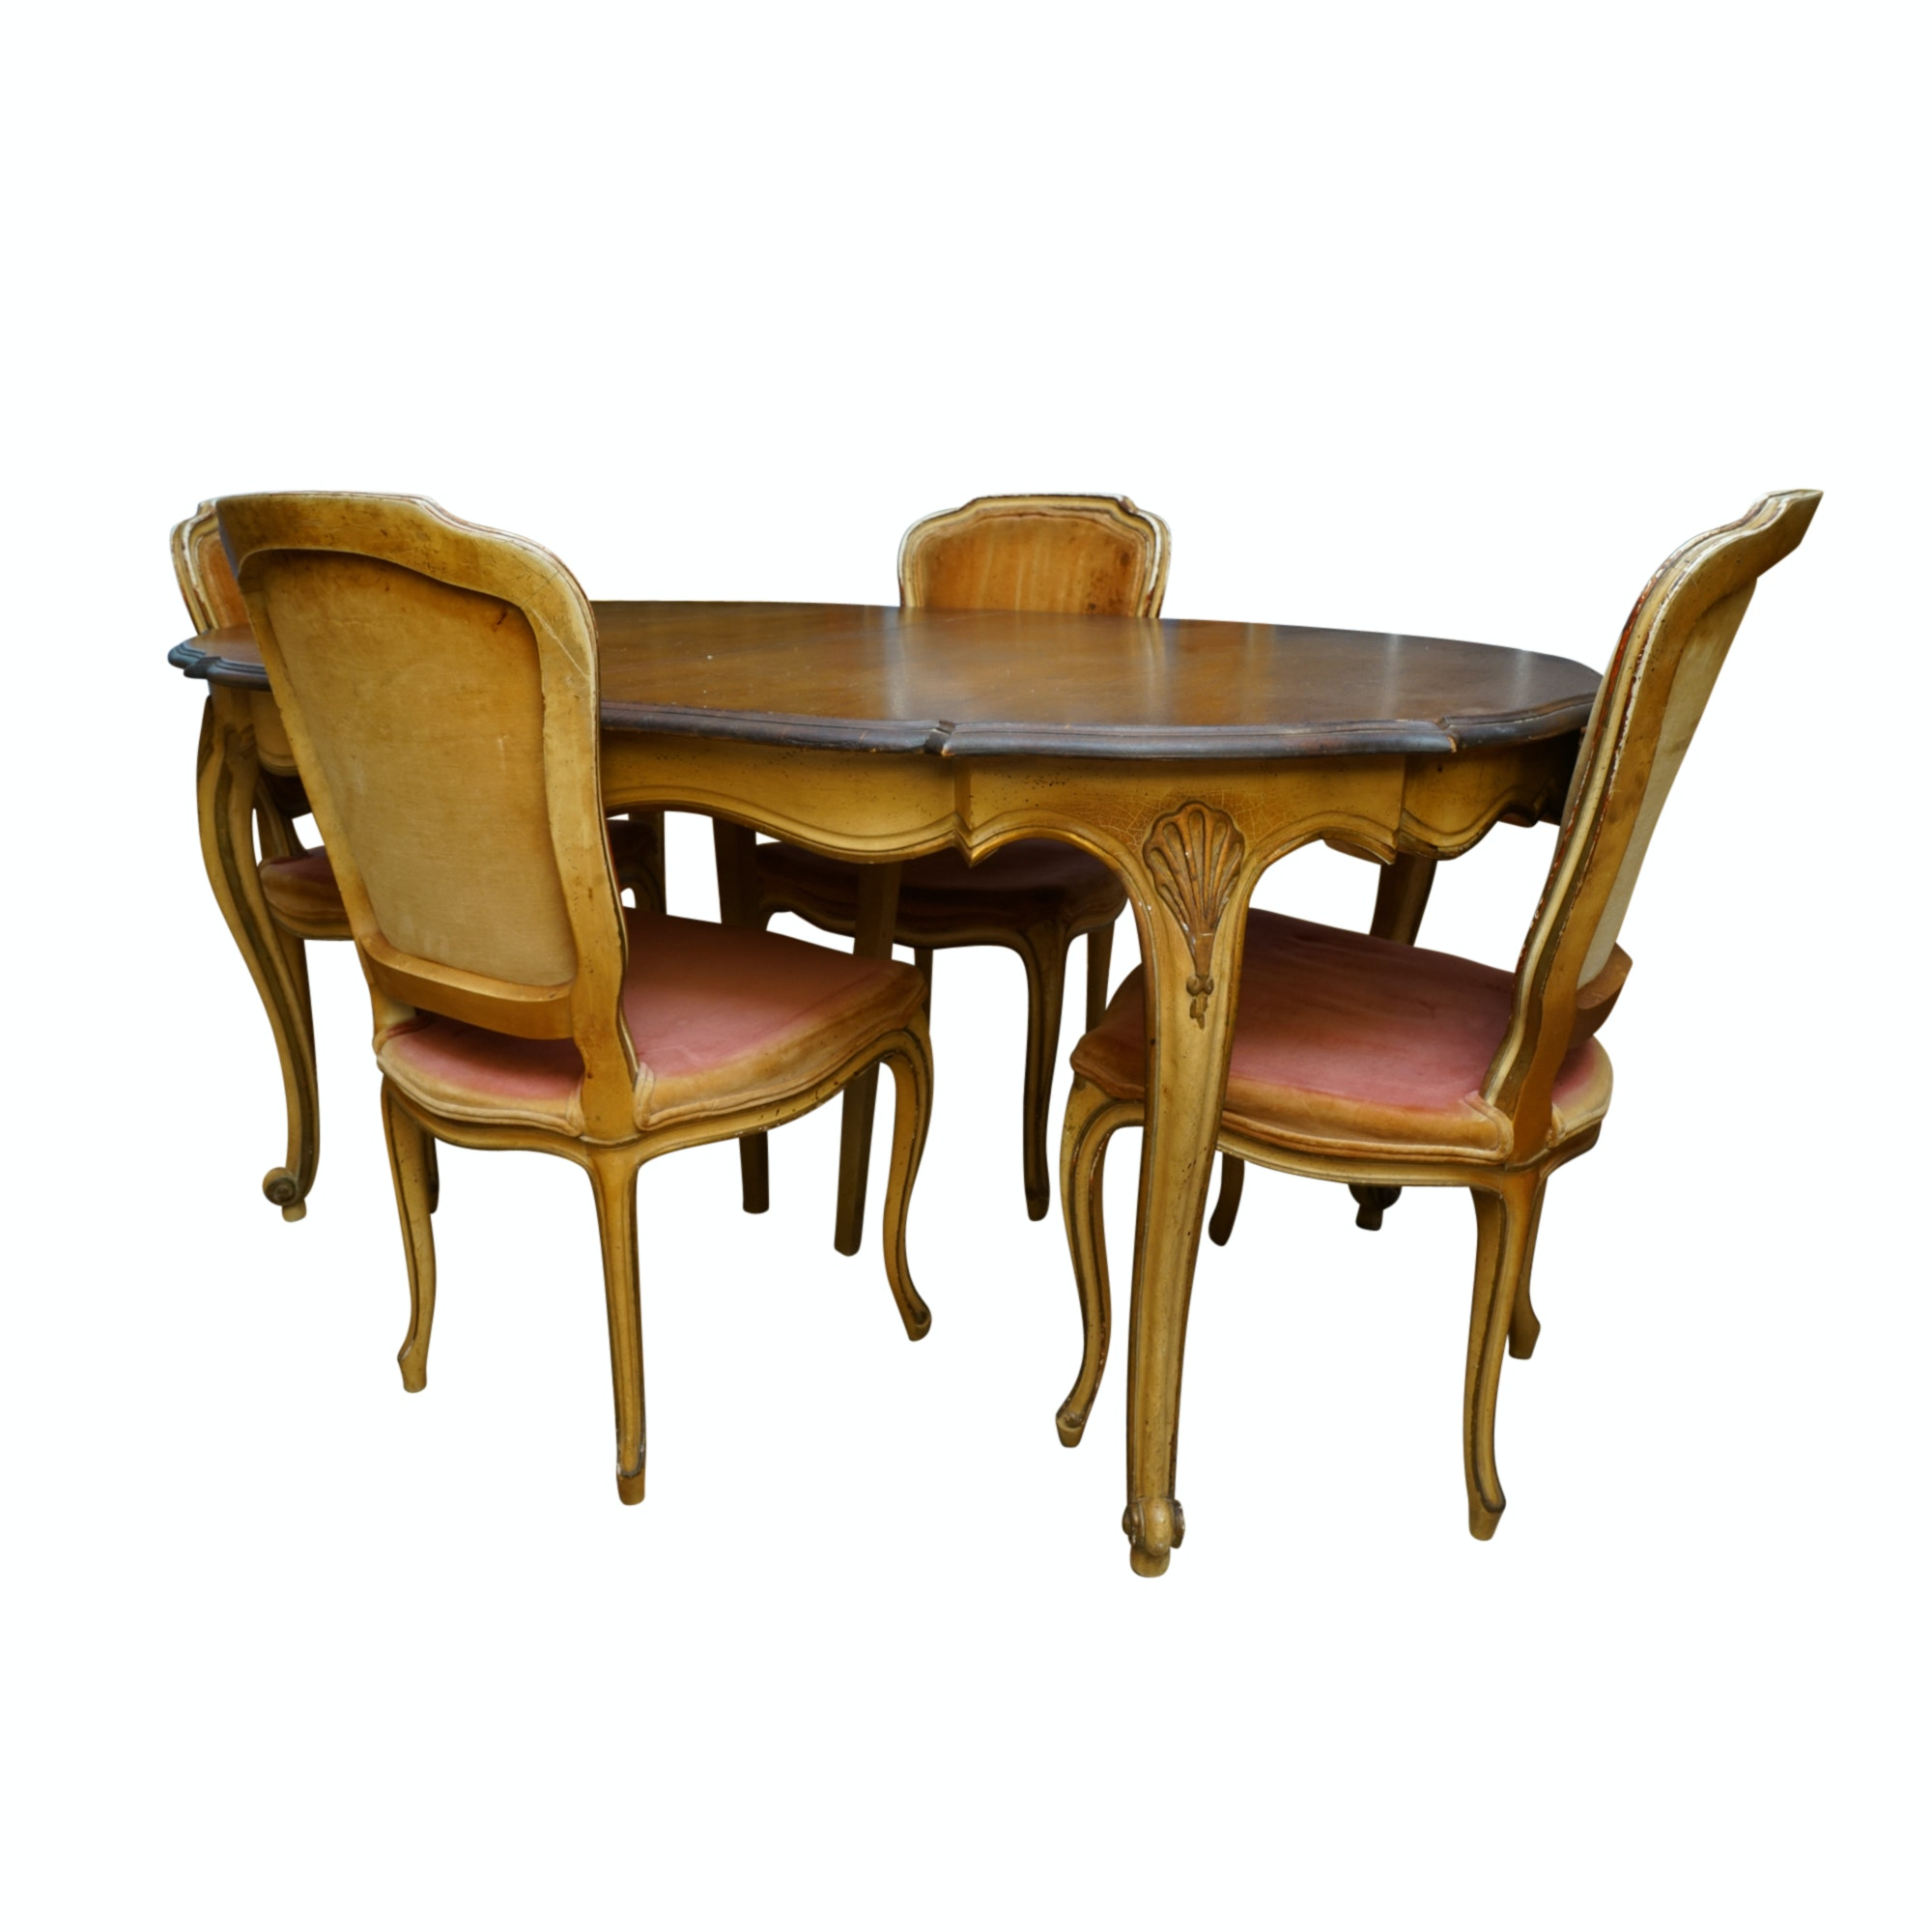 Vintage French Provincial Style Dining Table with Side Chairs